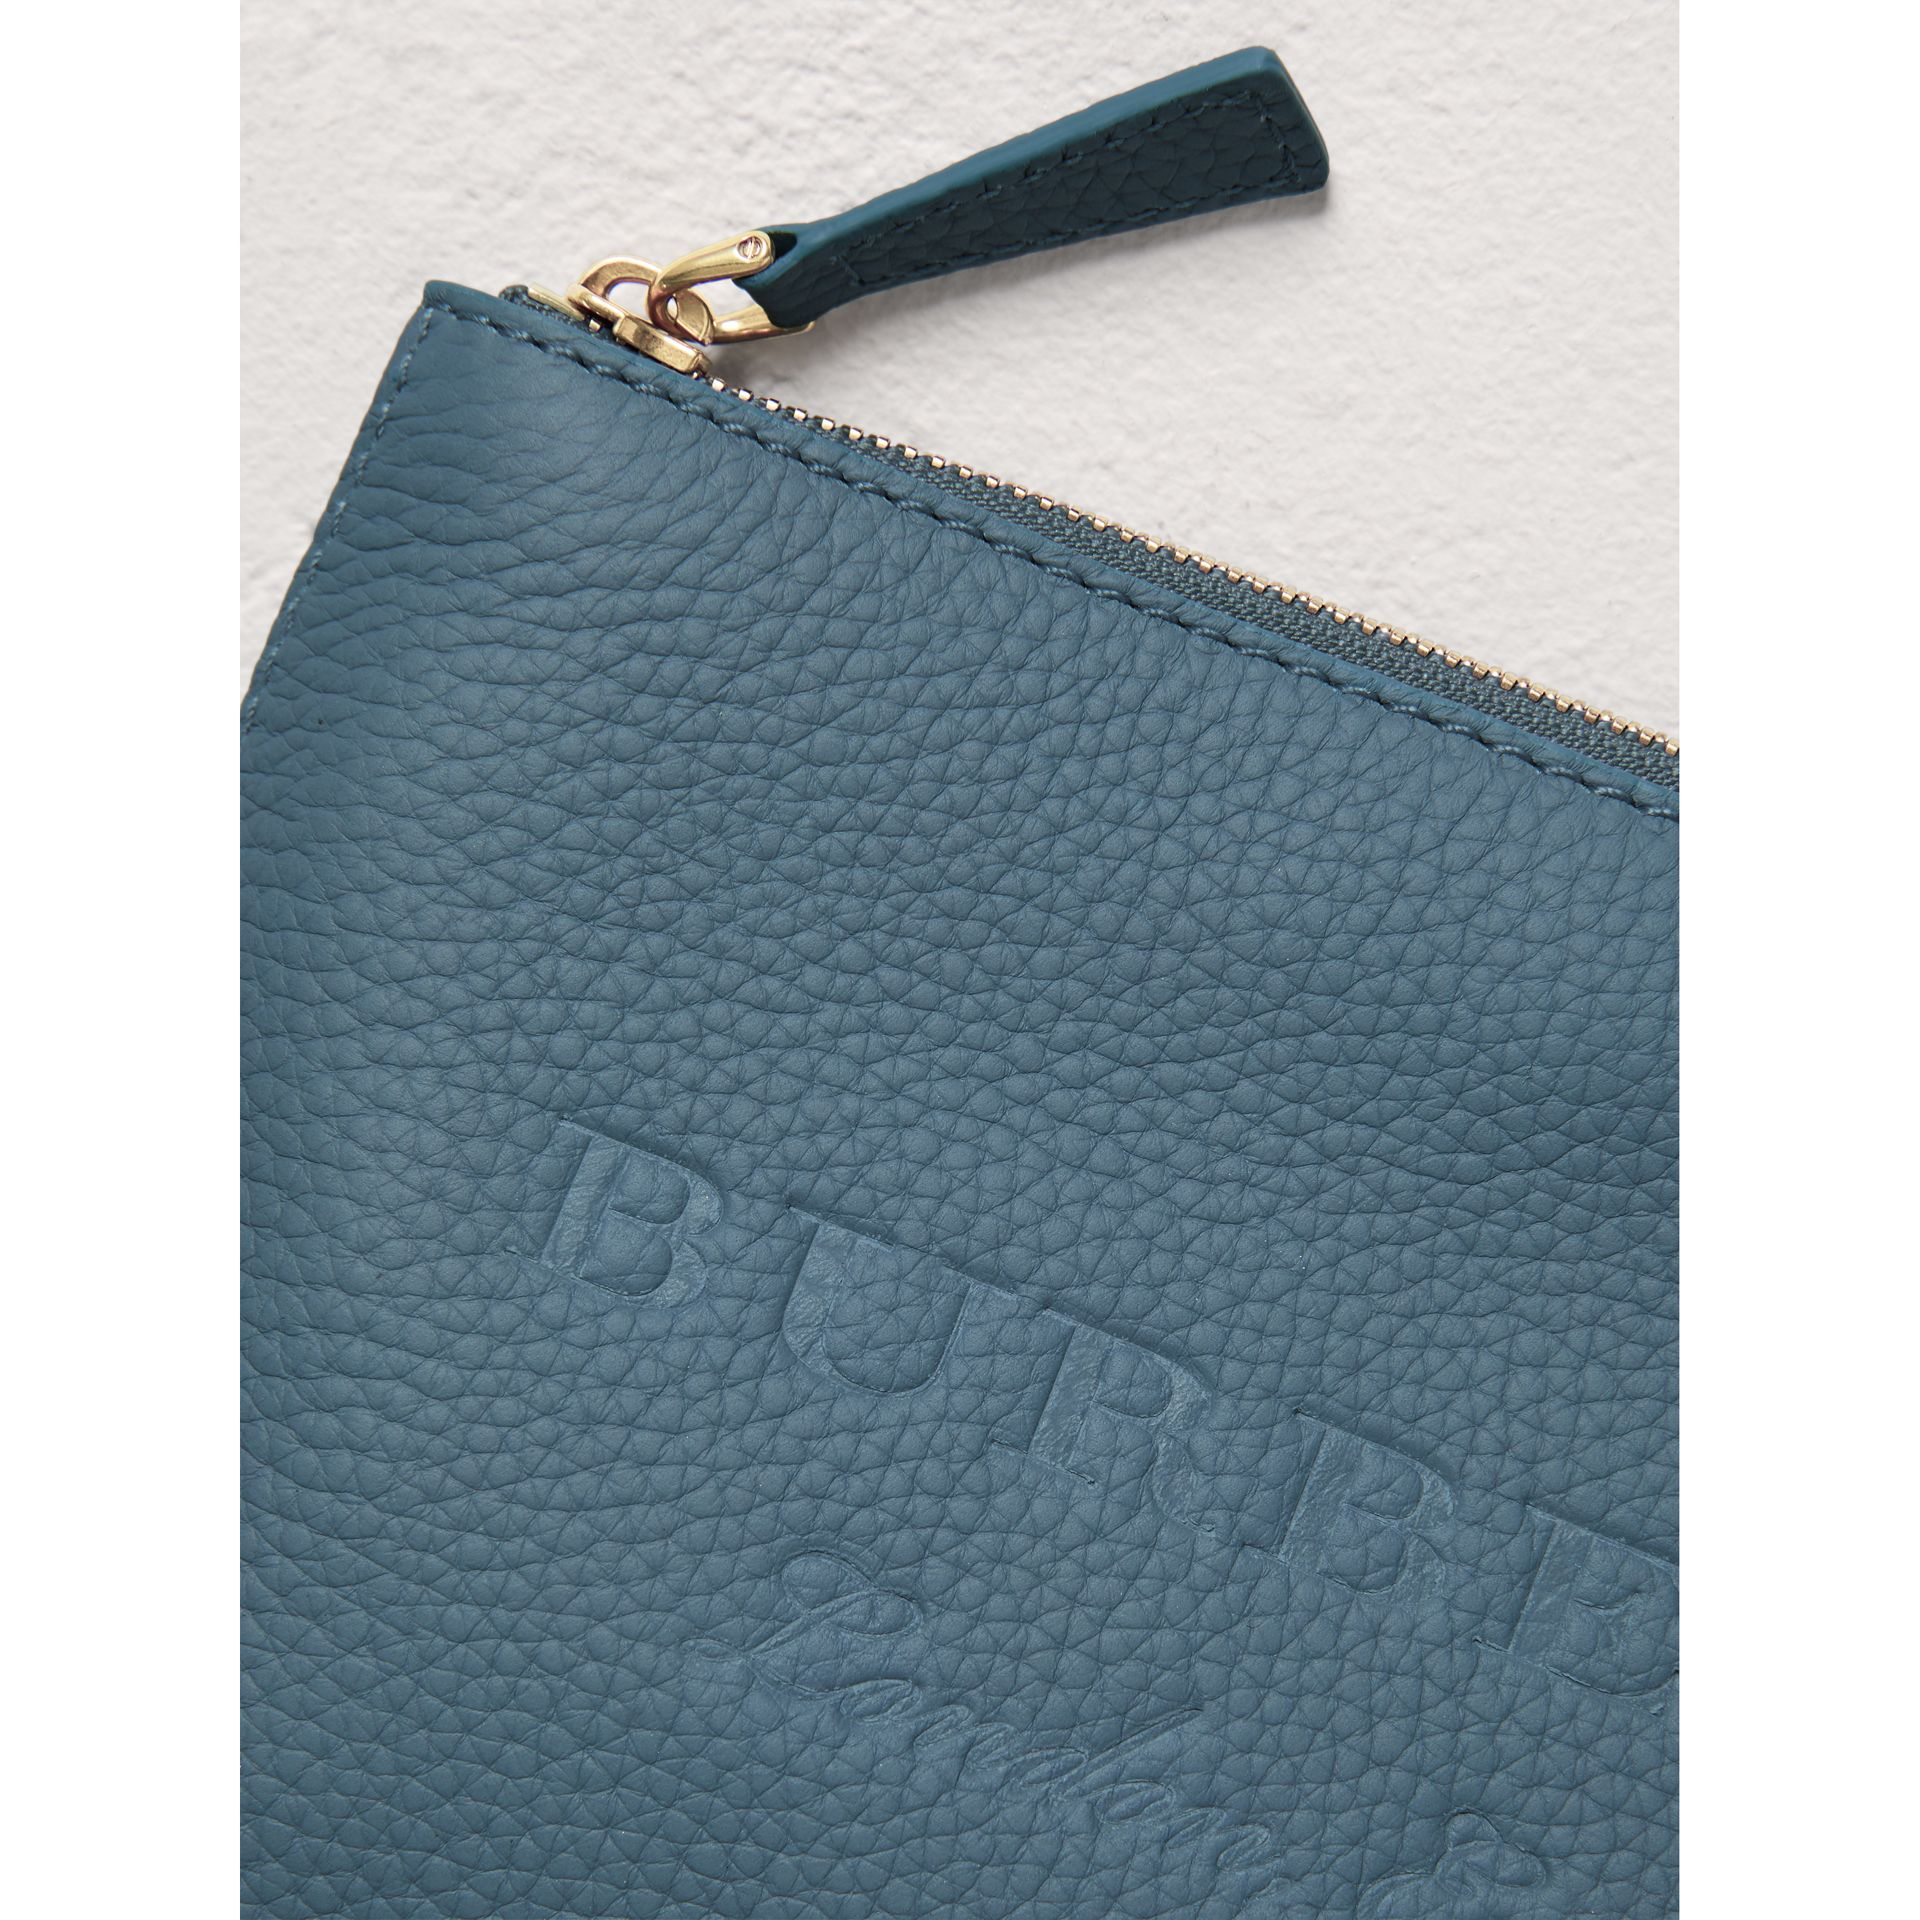 Medium Embossed Leather Zip Pouch in Dusty Teal Blue | Burberry - gallery image 1